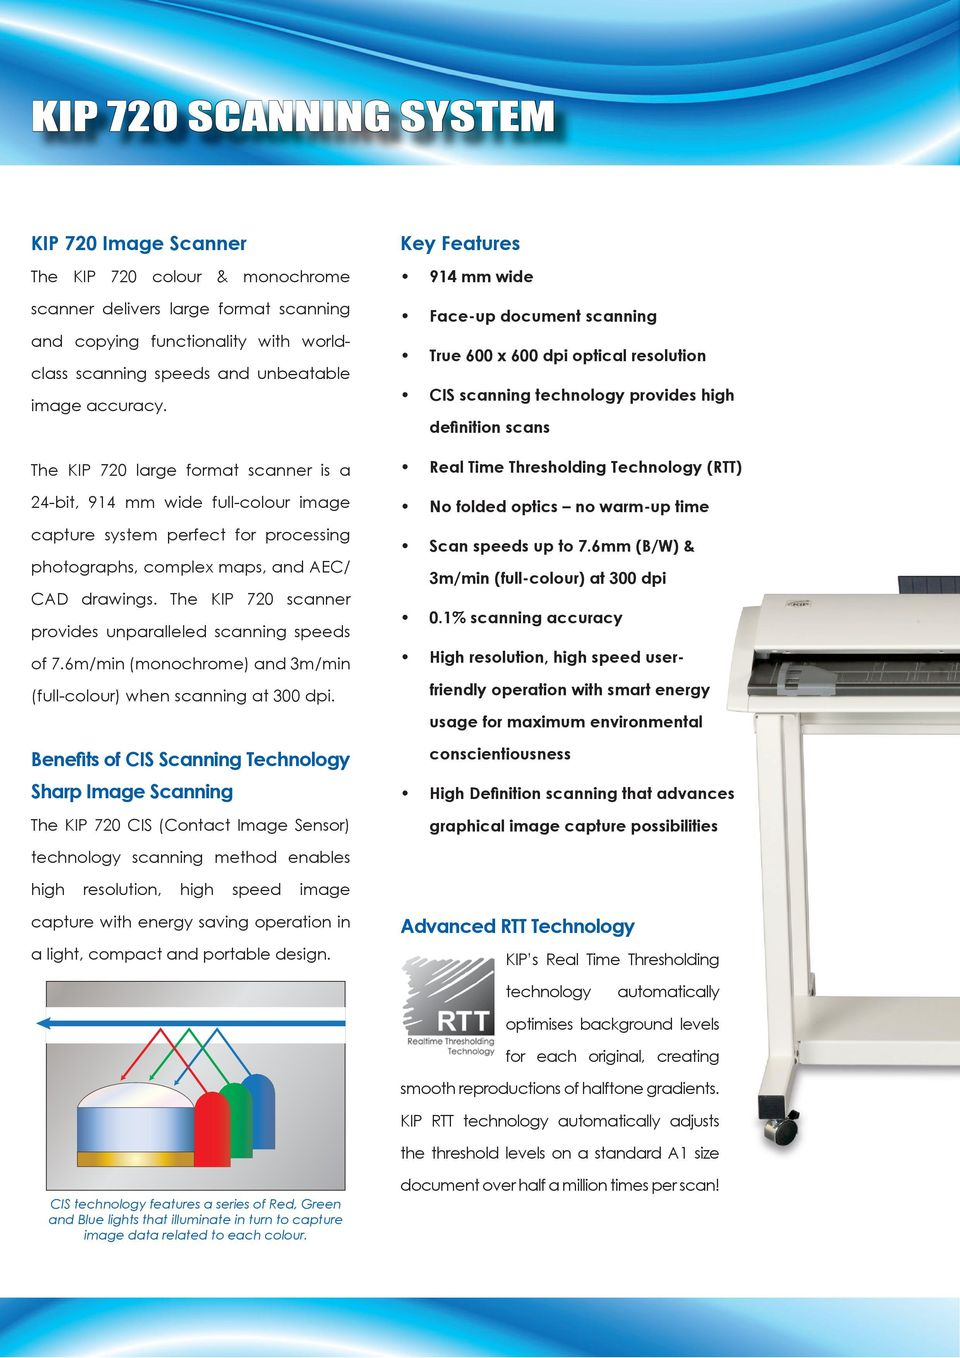 The KIP 720 scanner provides unparalleled scanning speeds of 7.6m/min (monochrome) and 3m/min (full-colour) when scanning at 300 dpi.